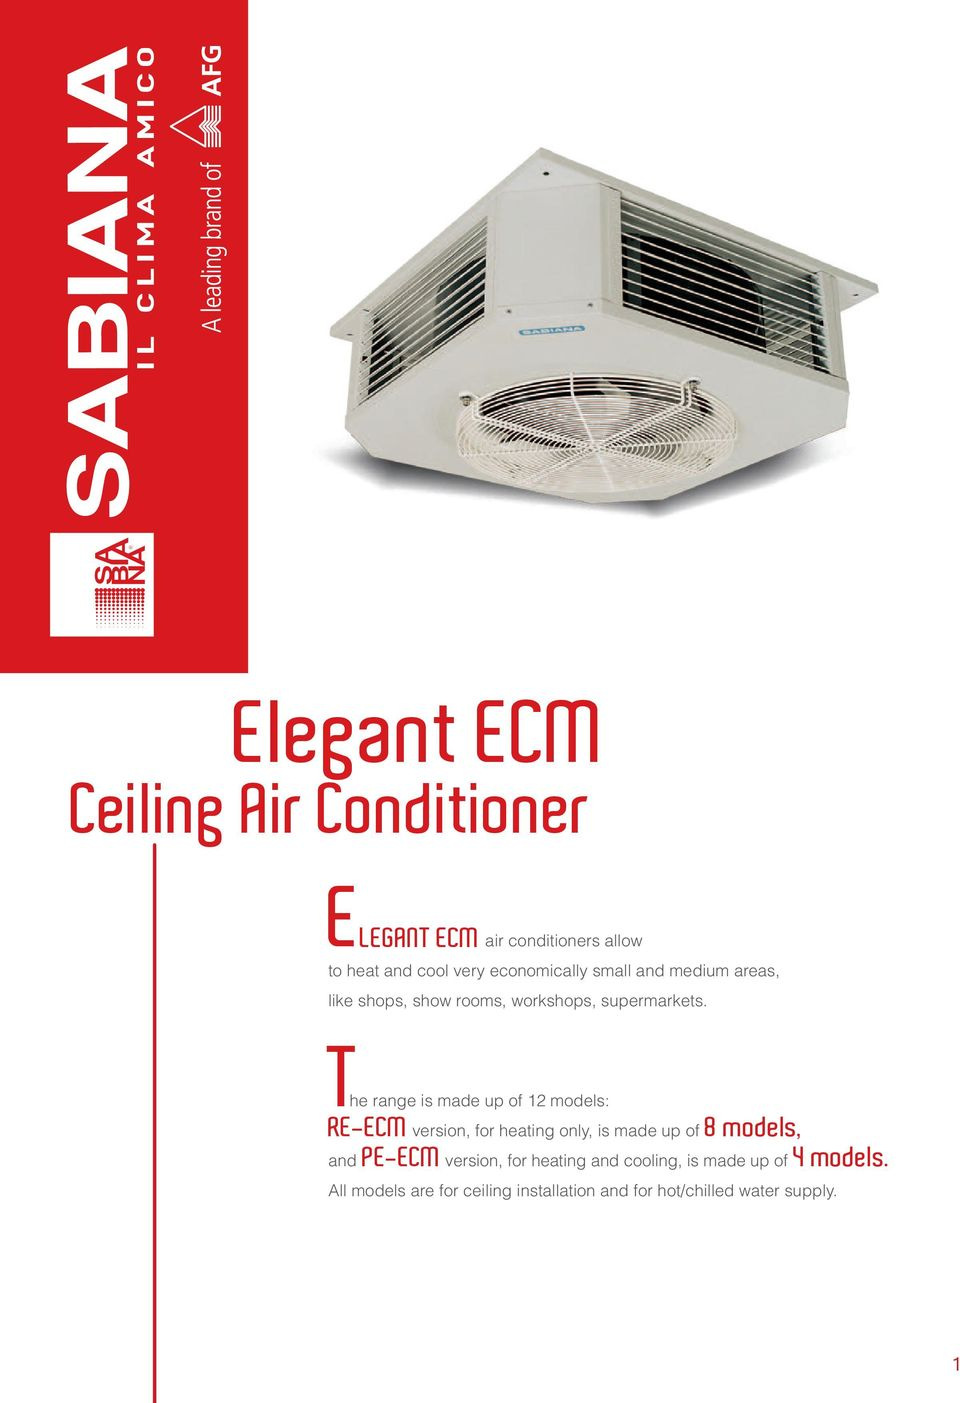 The range is made up of 12 models: RE-ECM version, for heating only, is made up of 8 models, and PE-ECM